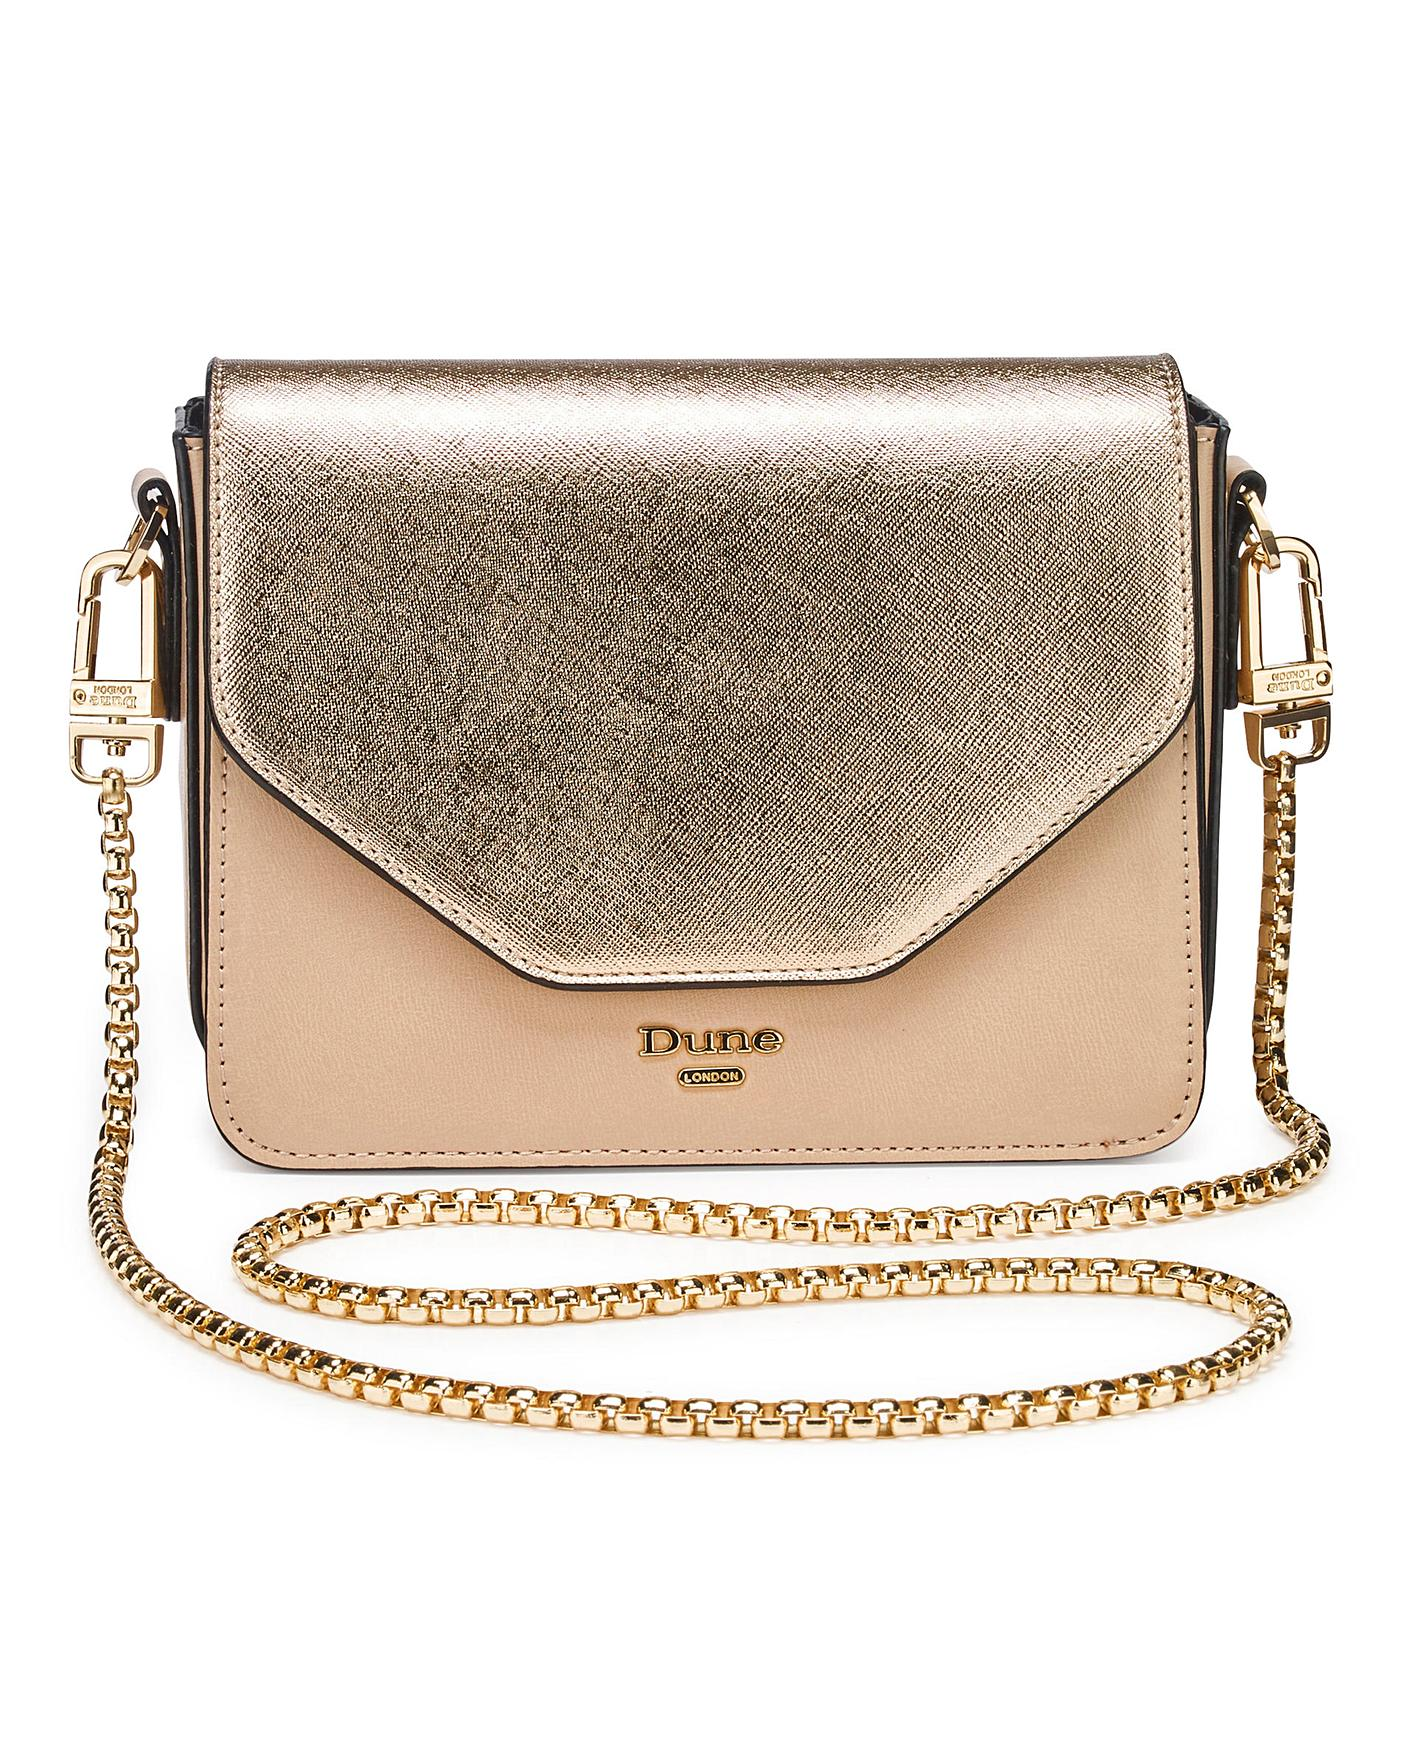 f958c64b0734 Description. Personalise your look with the Dune Etwo saddle bag ...